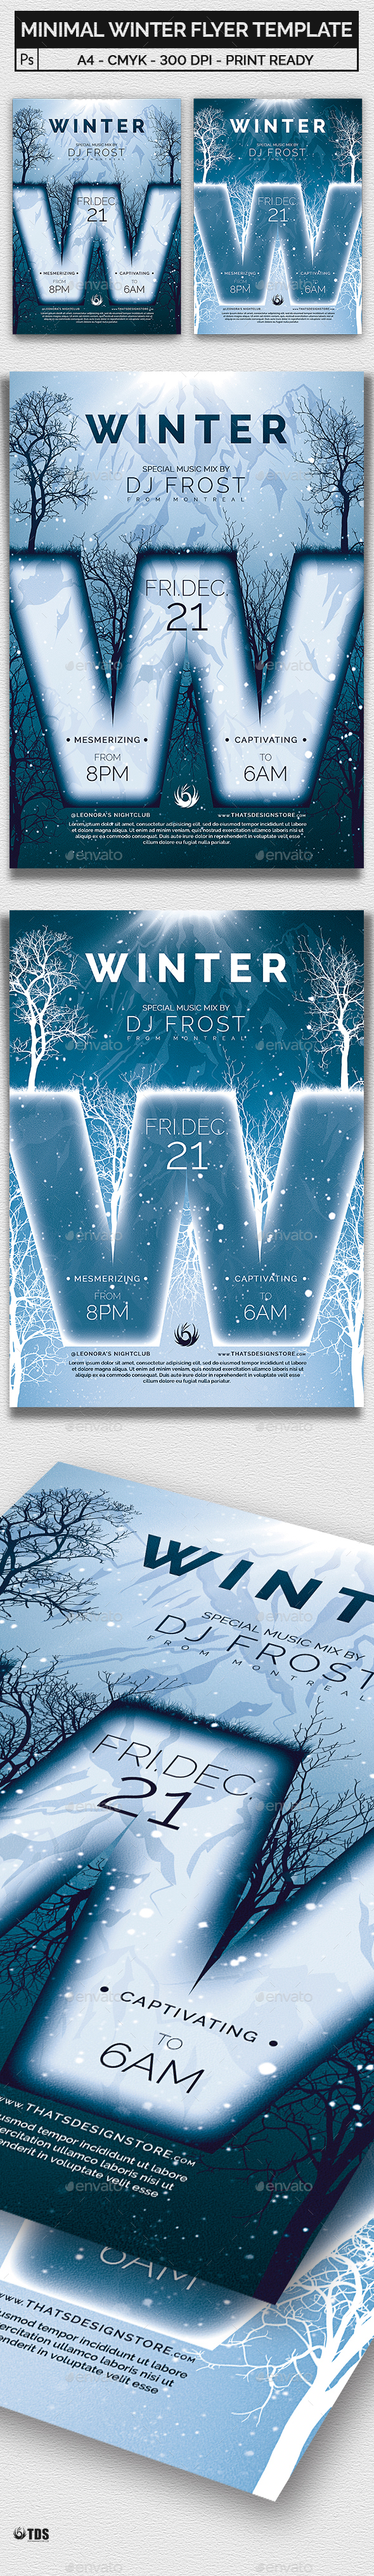 Minimal Winter Flyer Template by lou606 | GraphicRiver